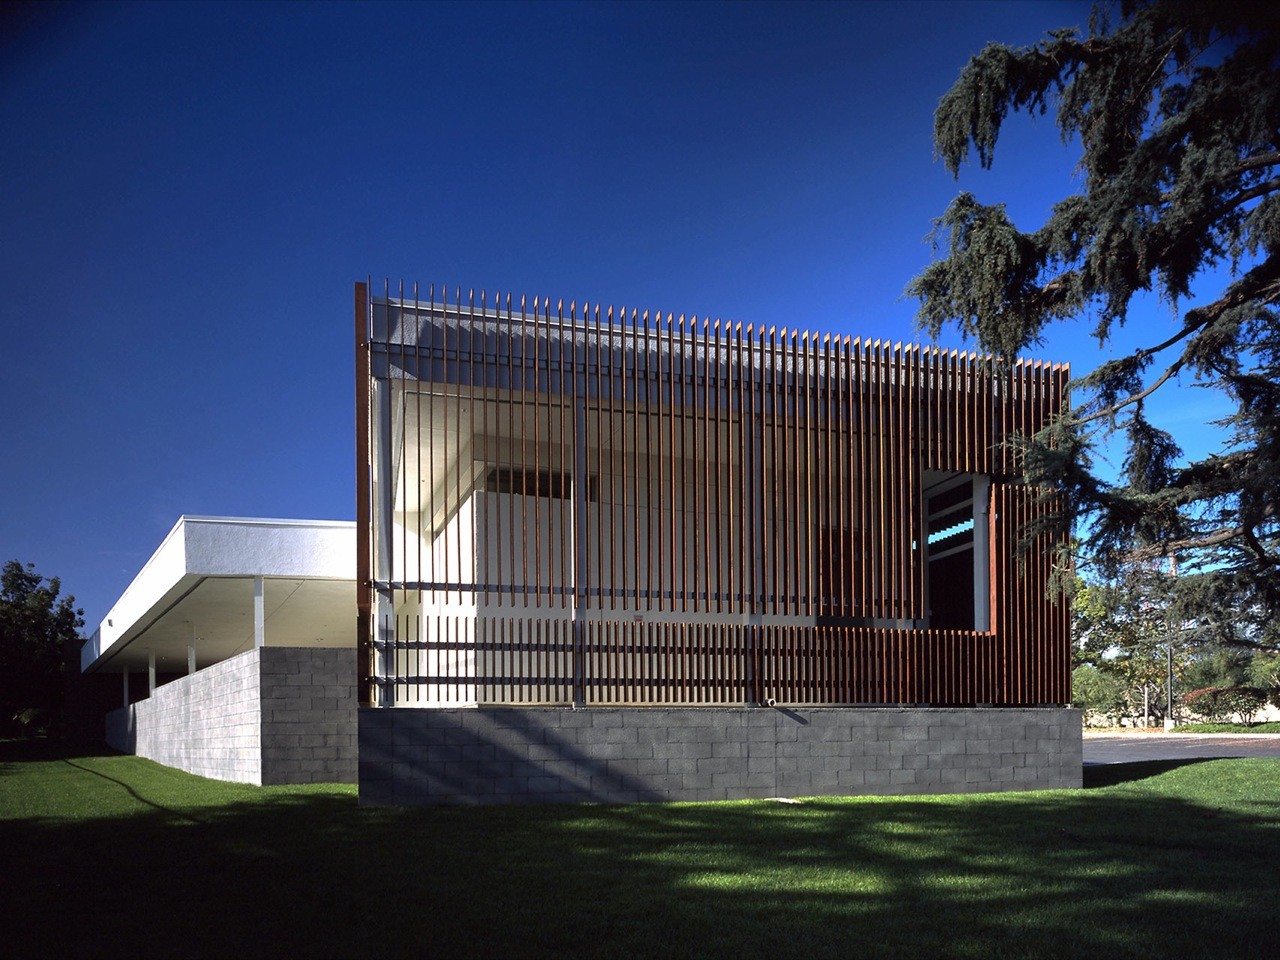 The Ruth and Charles Gilb Arcadia Historical Museum / Sparano + Mooney Architecture, © John Edward Linden